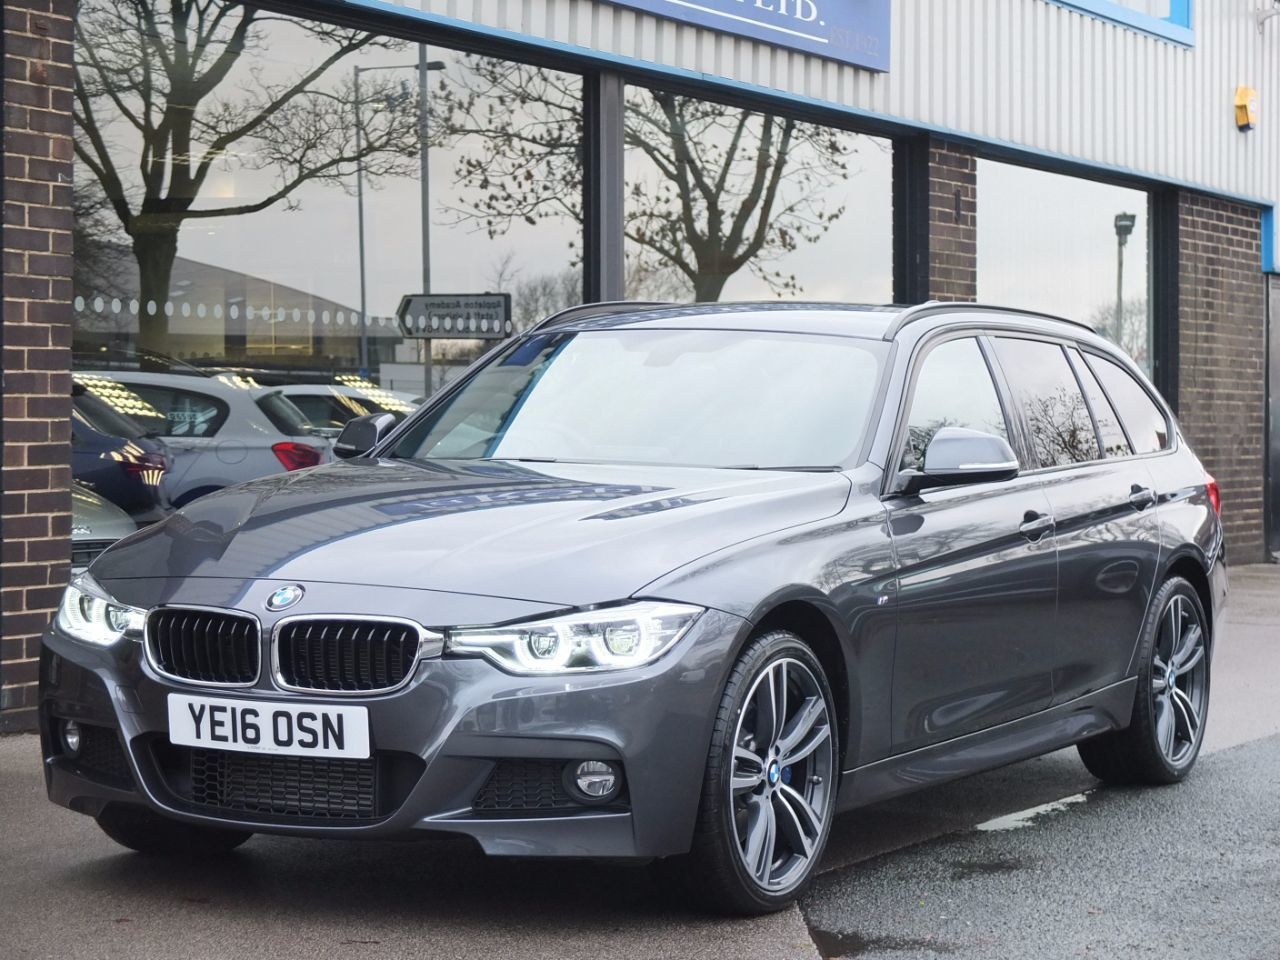 BMW 3 Series 2.0 320d xDrive M Sport Plus Pack Touring Auto 190ps Estate Diesel Mineral Grey MetallicBMW 3 Series 2.0 320d xDrive M Sport Plus Pack Touring Auto 190ps Estate Diesel Mineral Grey Metallic at fa Roper Ltd Bradford